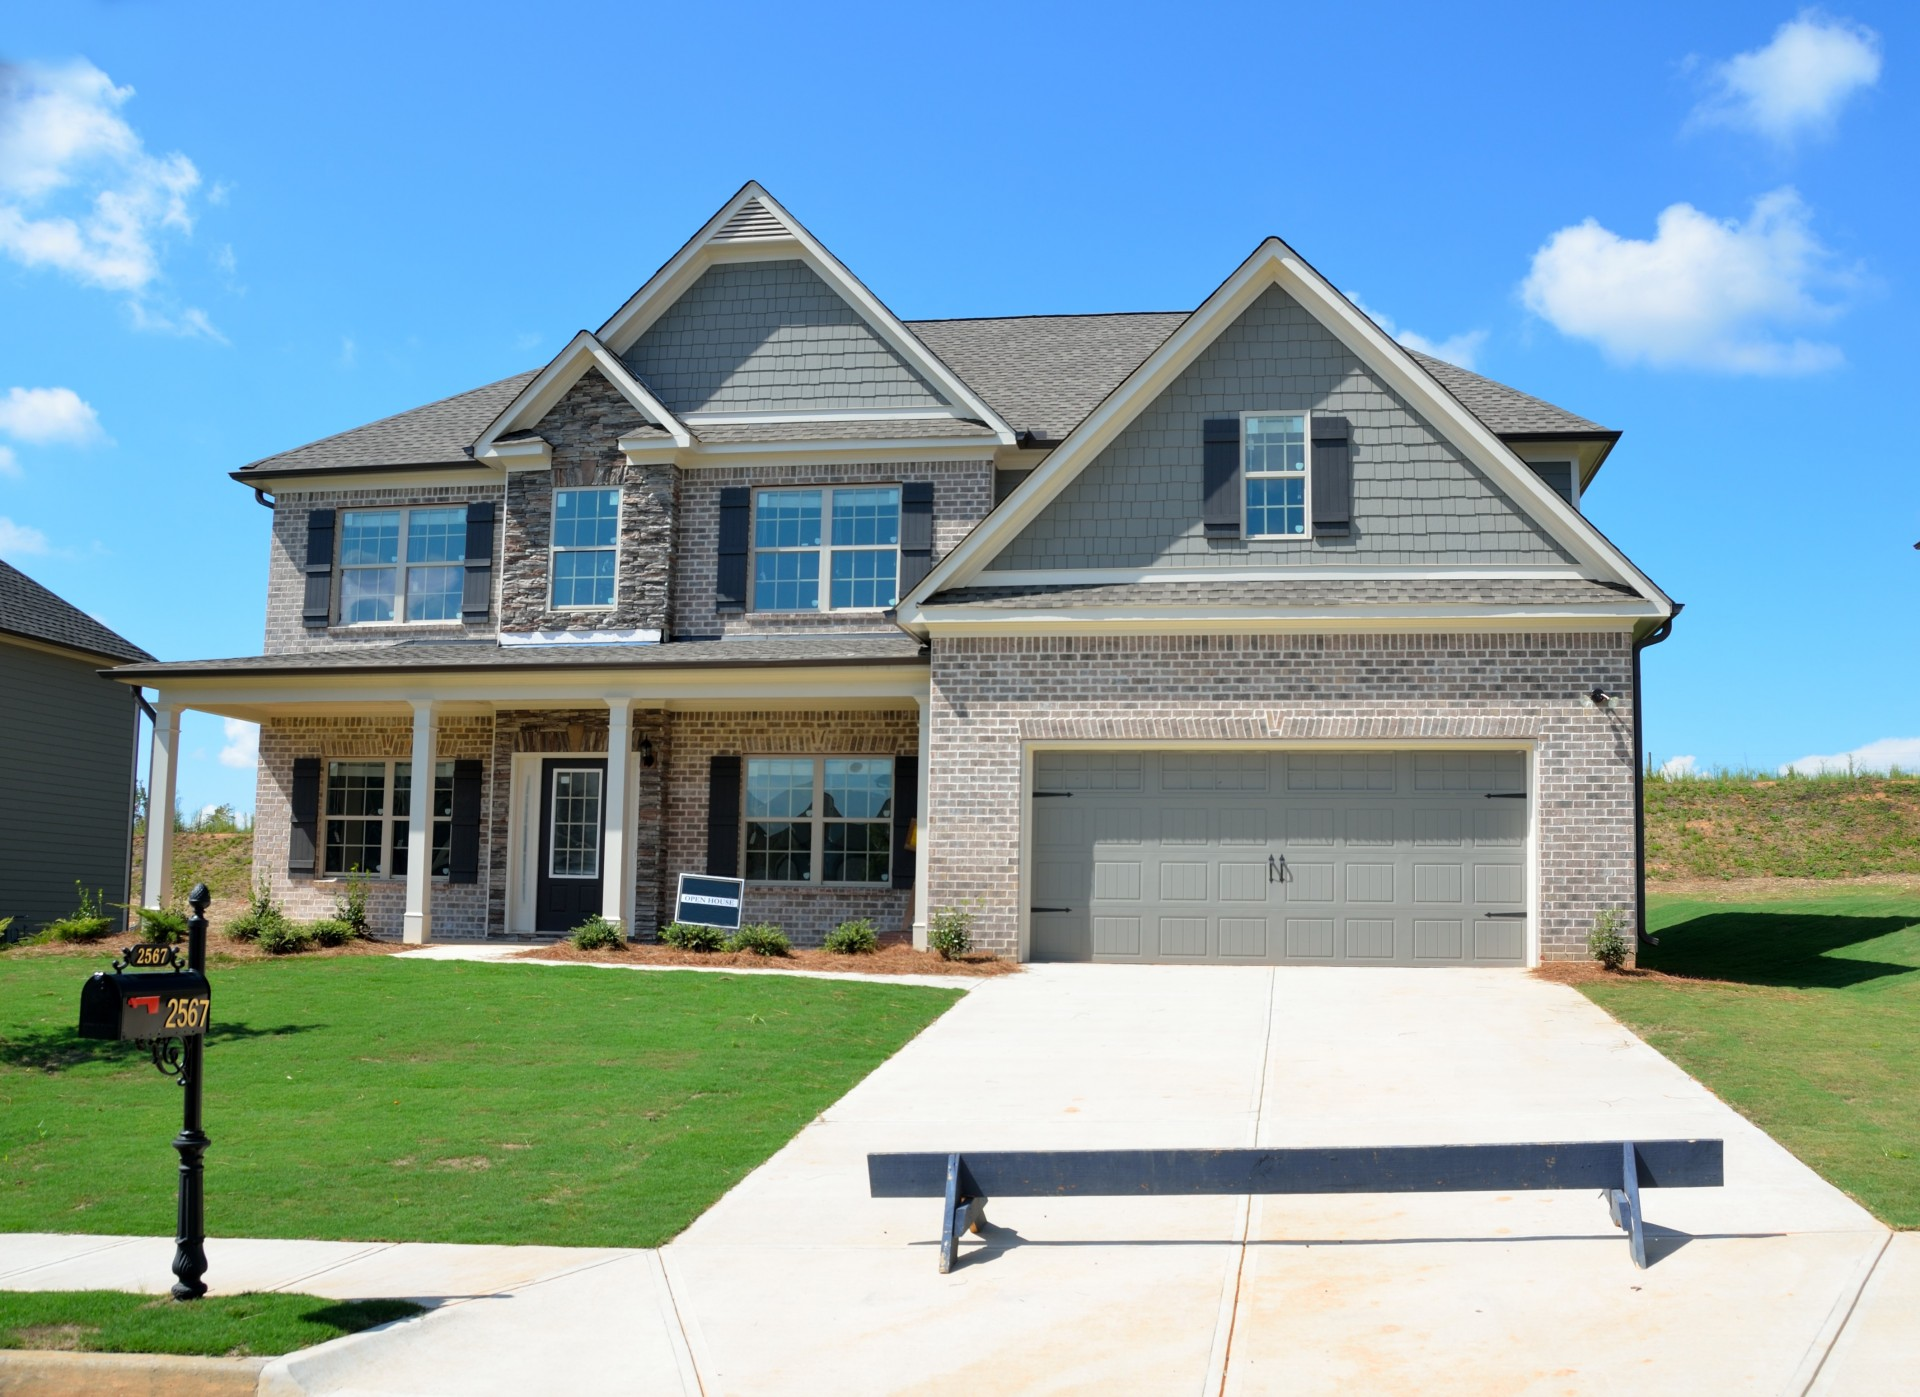 The advantages and disadvantages of new property setschedule for Build your new home